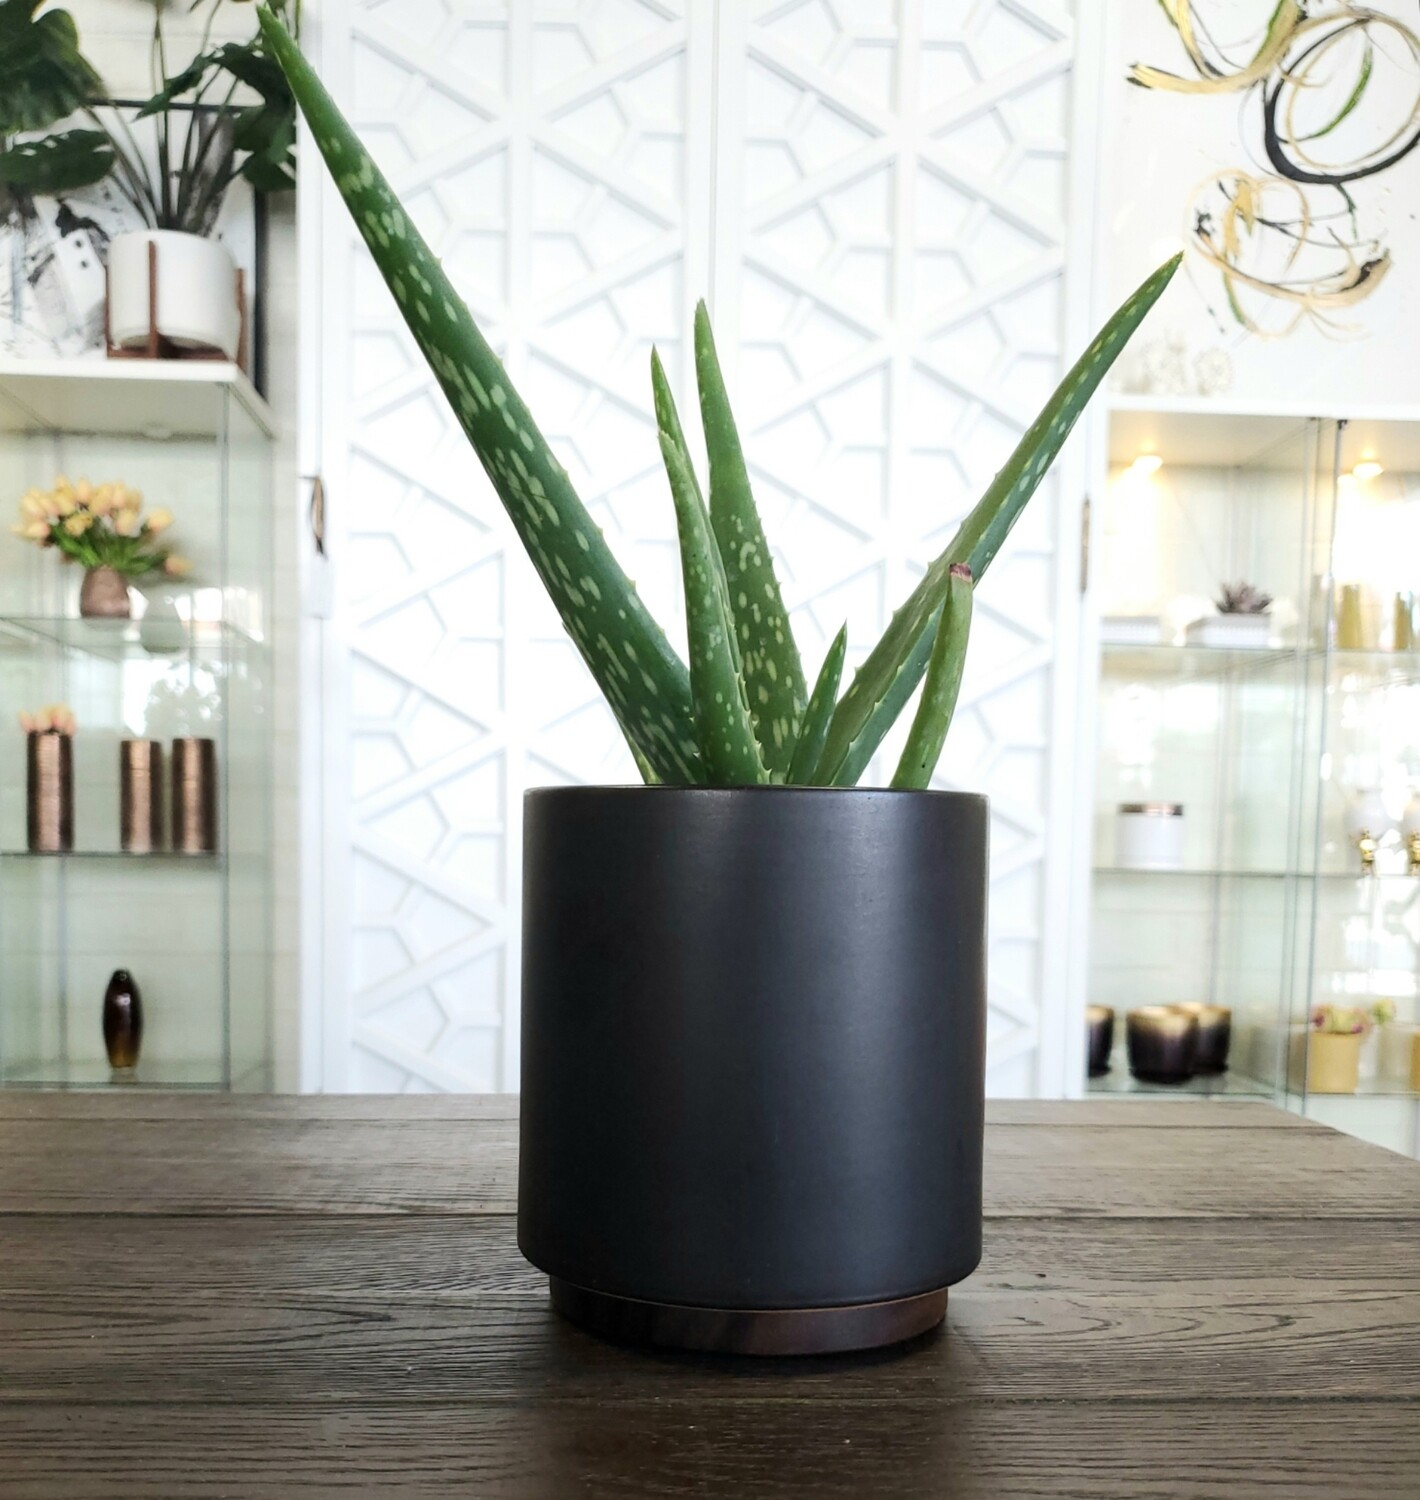 The Four Potted Aloe Plant